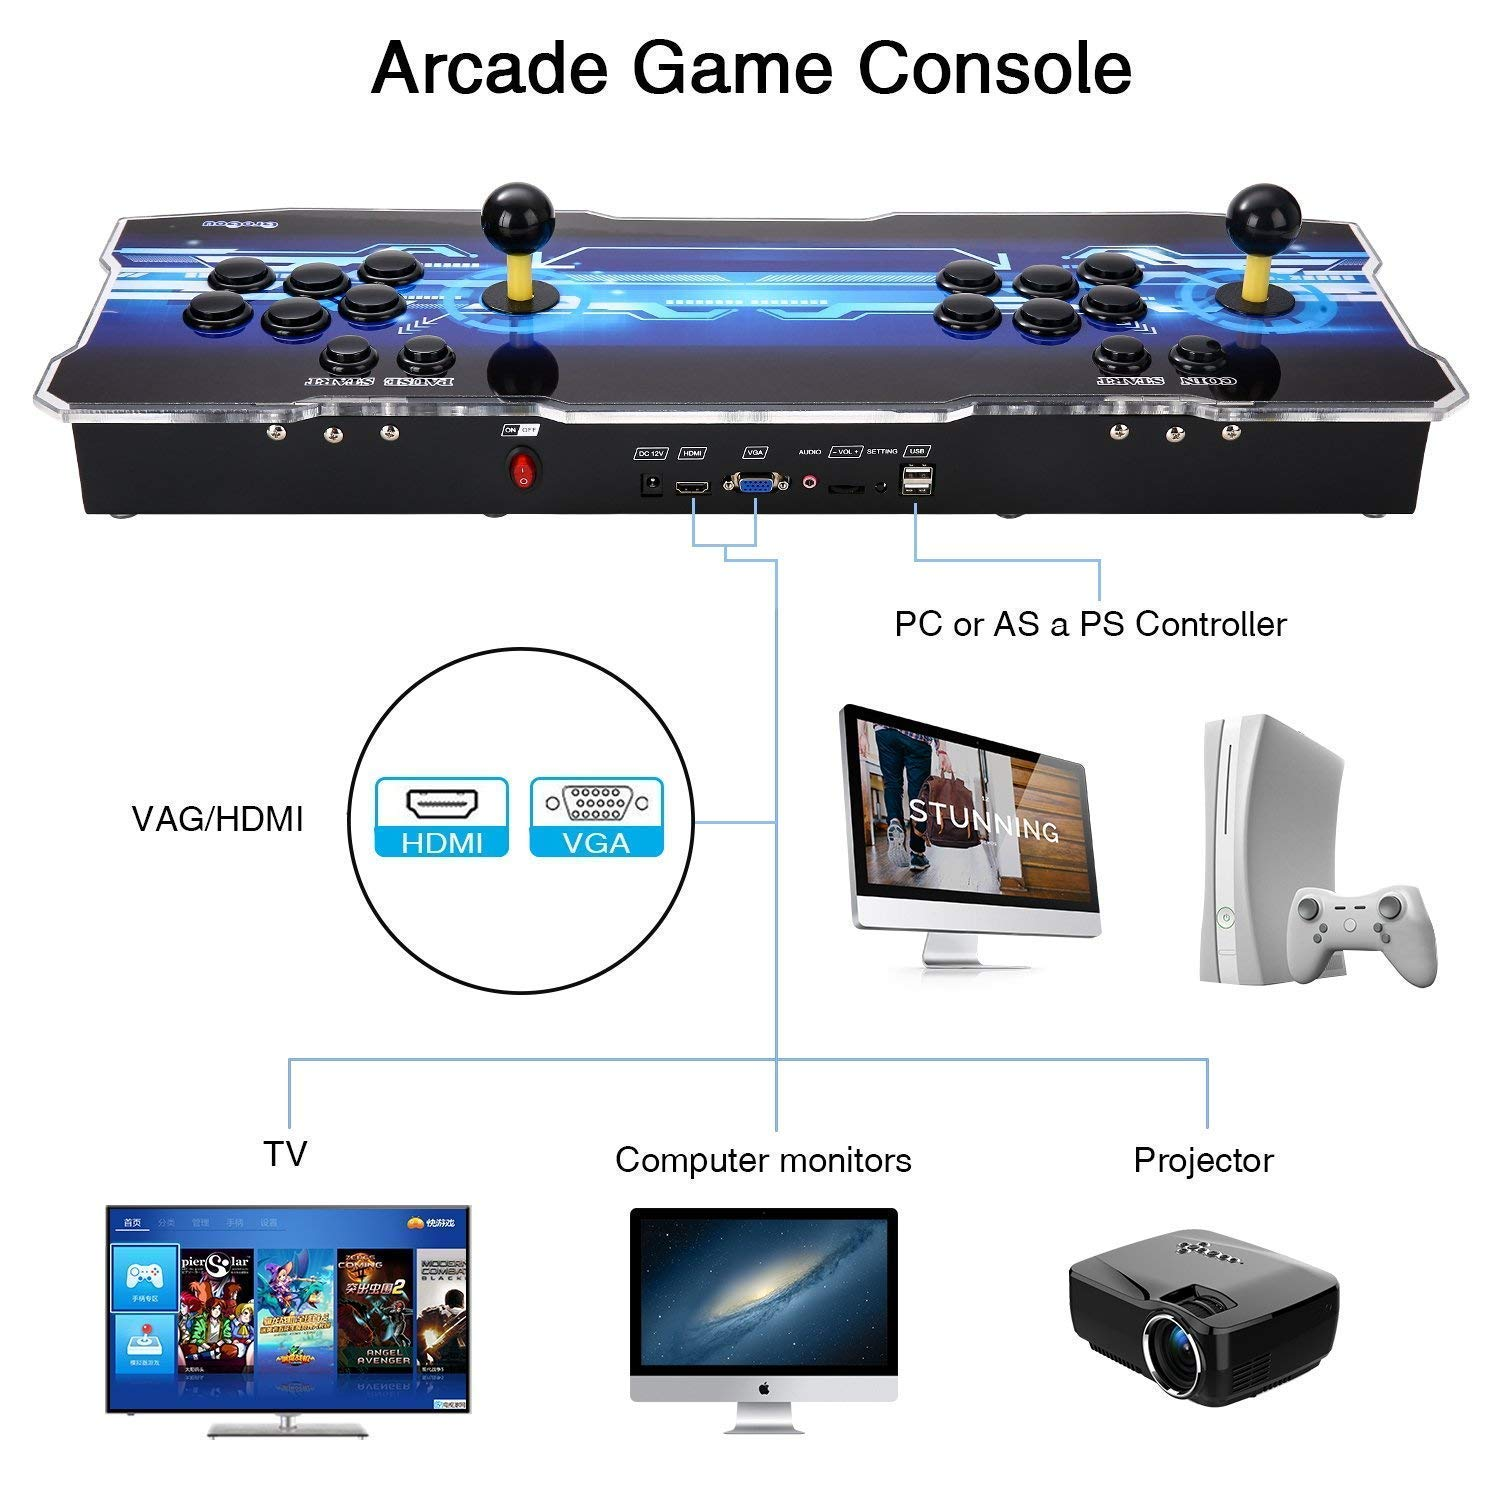 [2350 HD Retro Games] 3D Pandoras Box Arcade Video Game Console 1080P Game System with 2350 Games Supports 3D Games (Black) 1920x1080 by TanDer (Image #5)